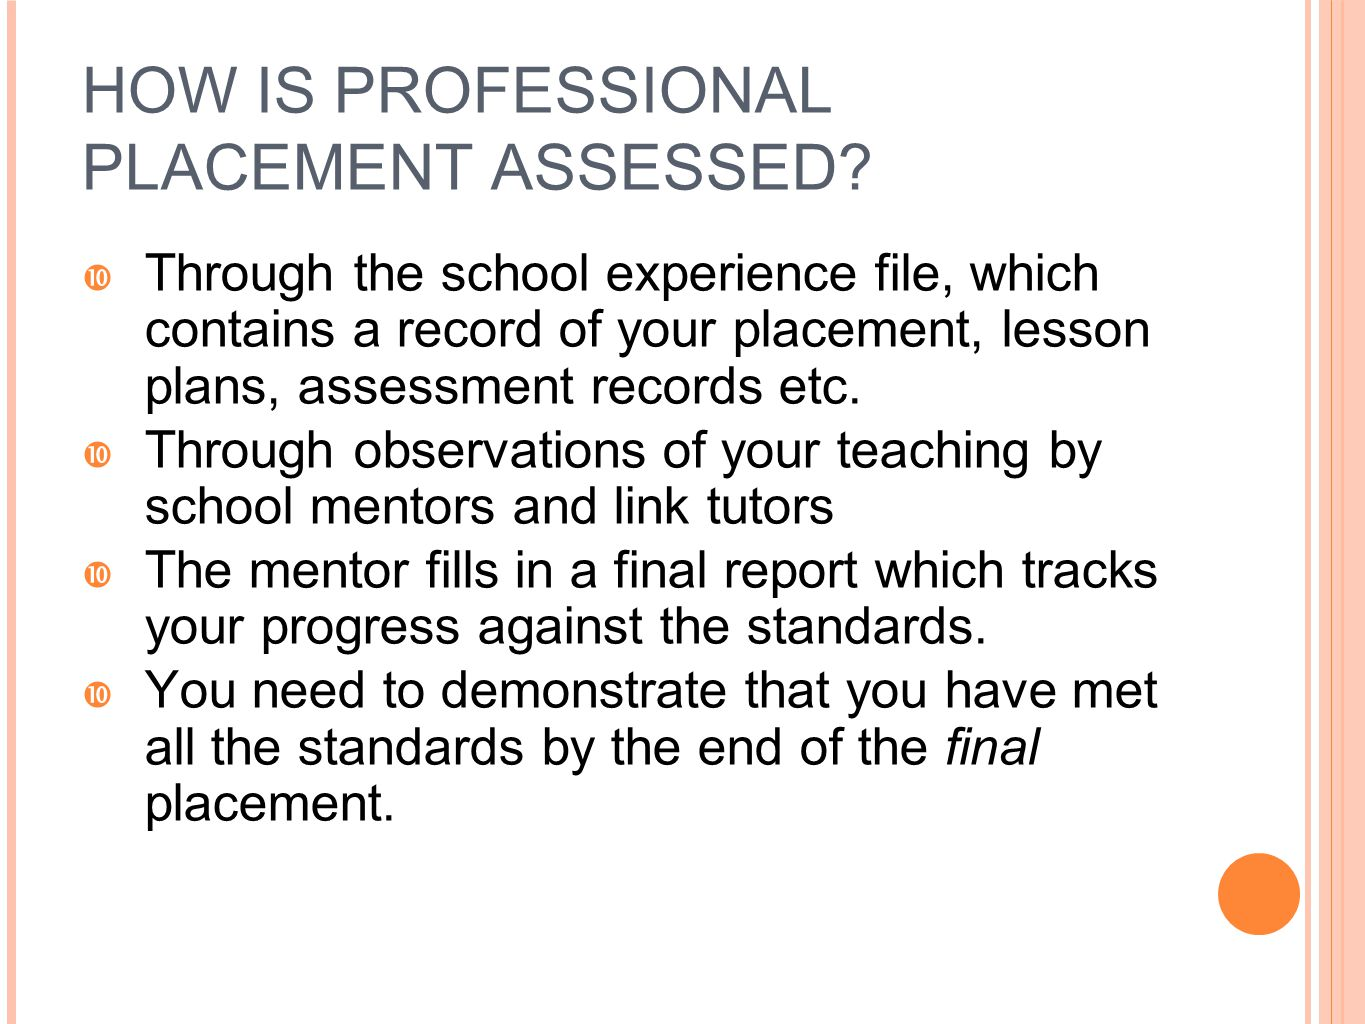 HOW IS PROFESSIONAL PLACEMENT ASSESSED